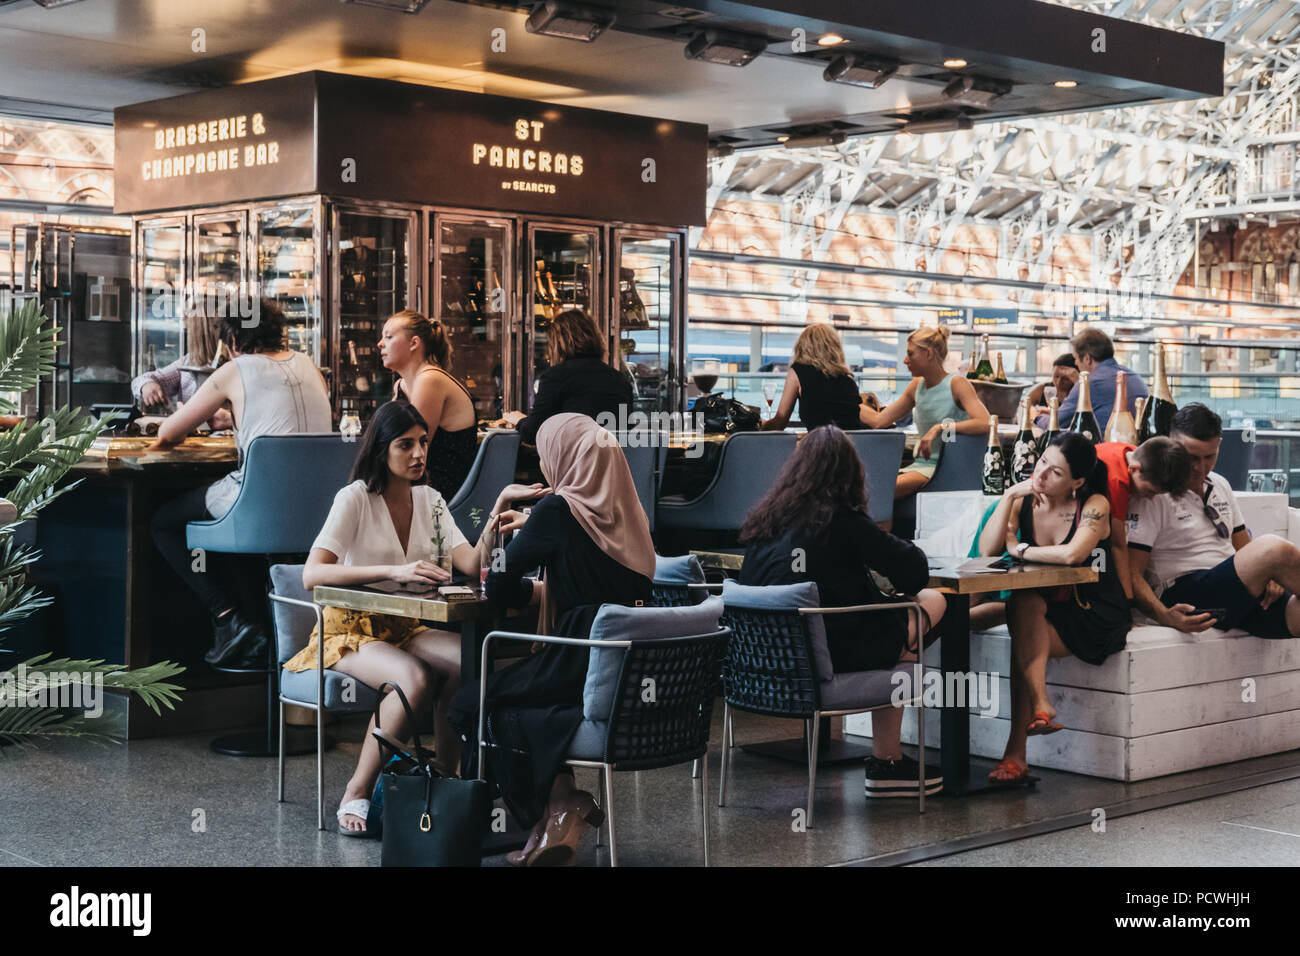 People Sitting At A Bar Inside St Pancras Station One Of The